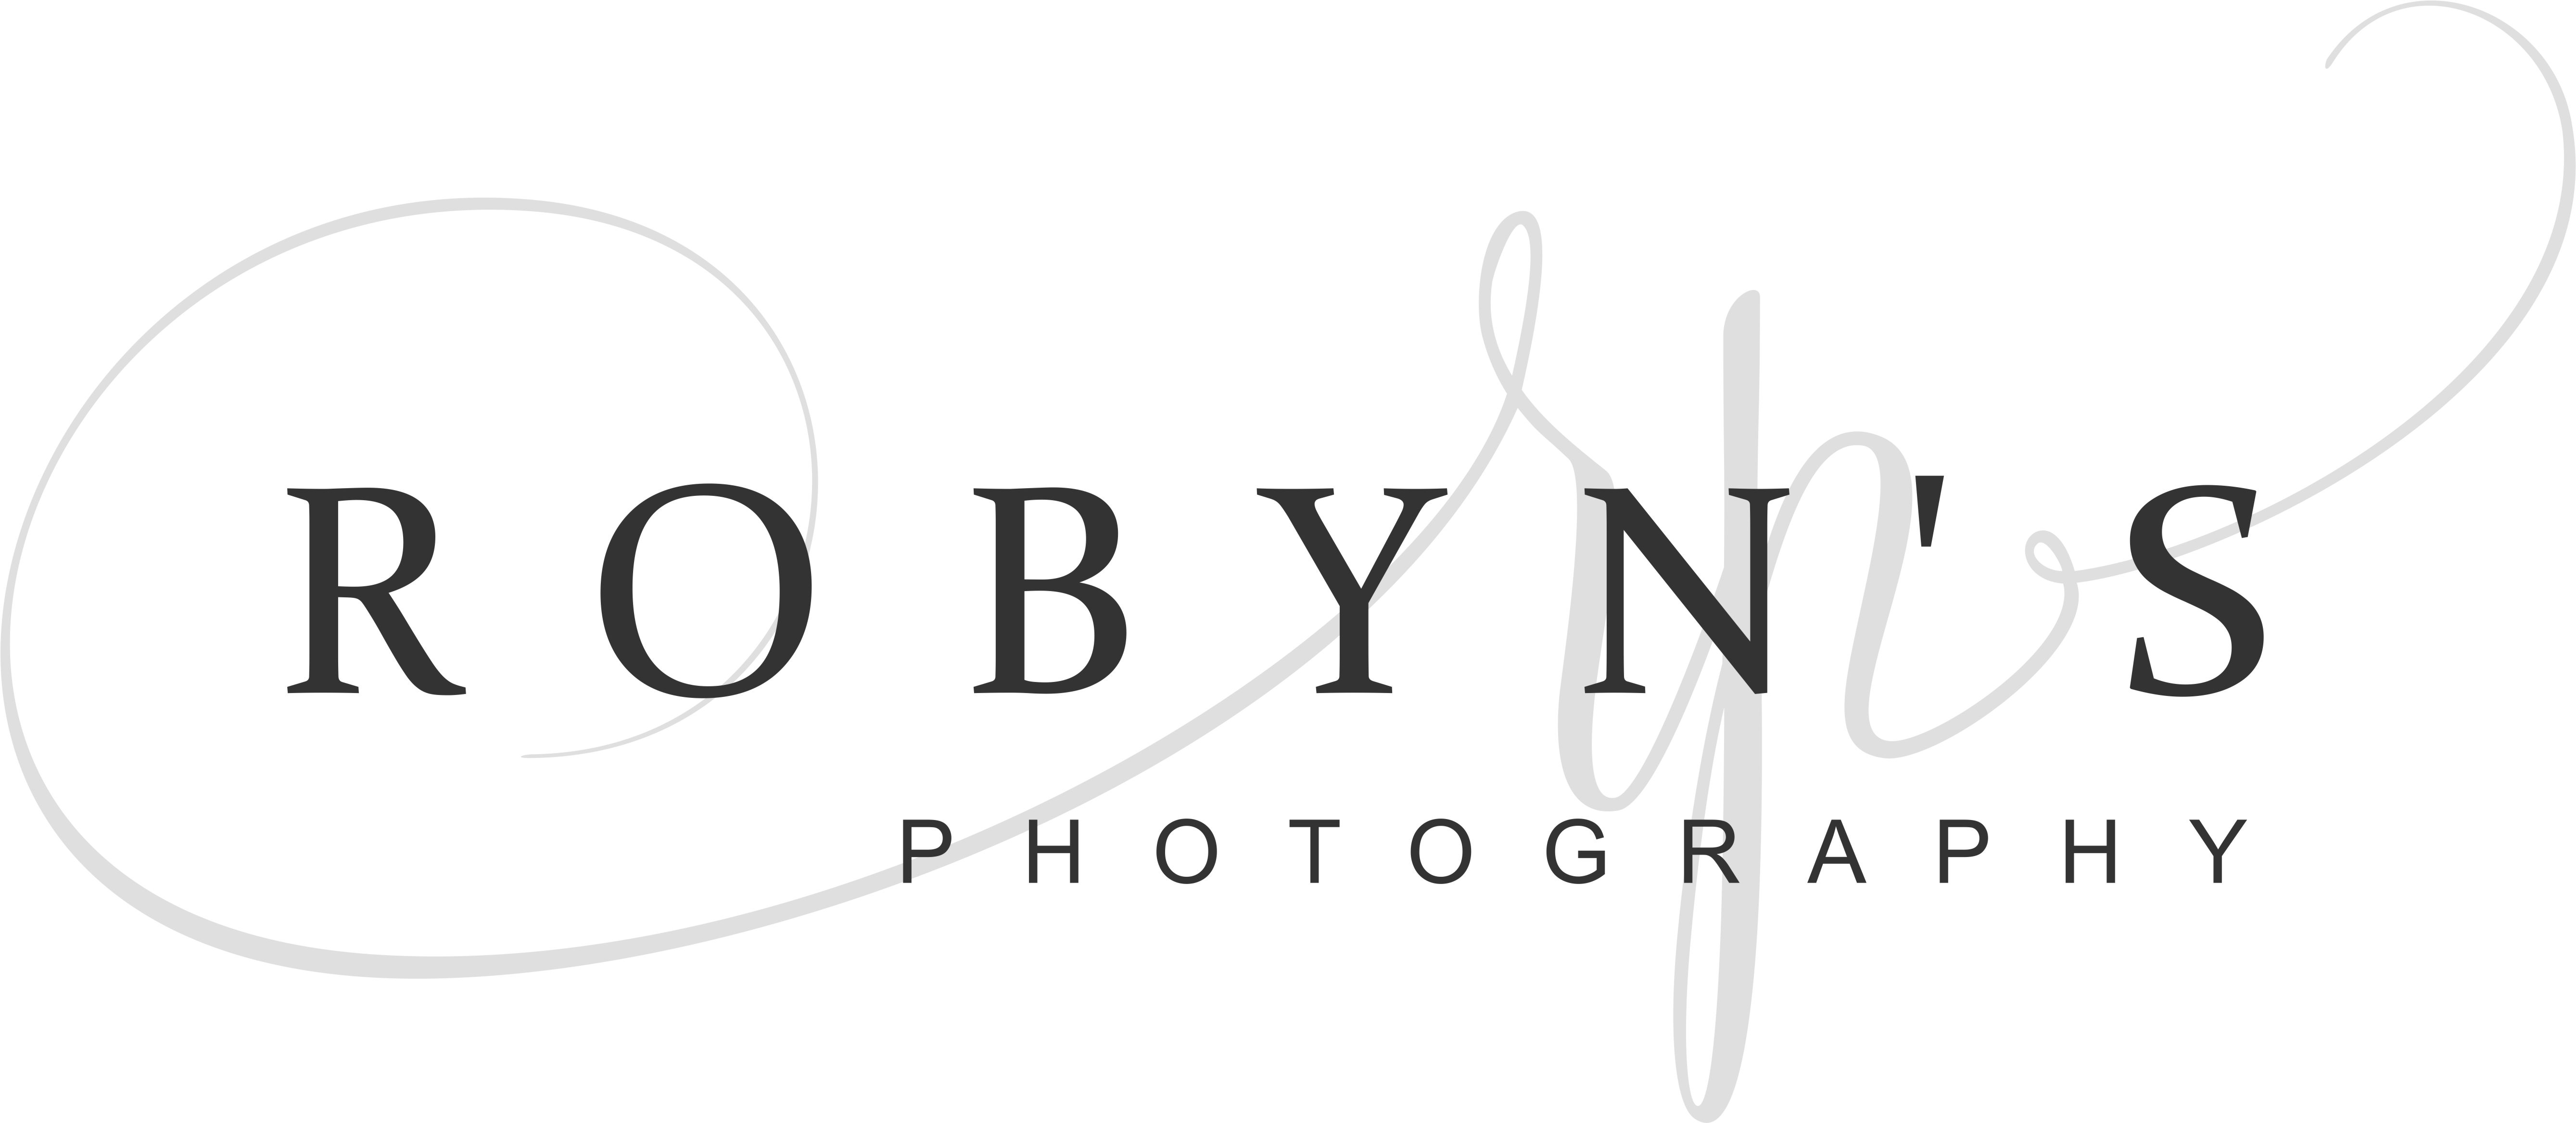 Robyn's Photography